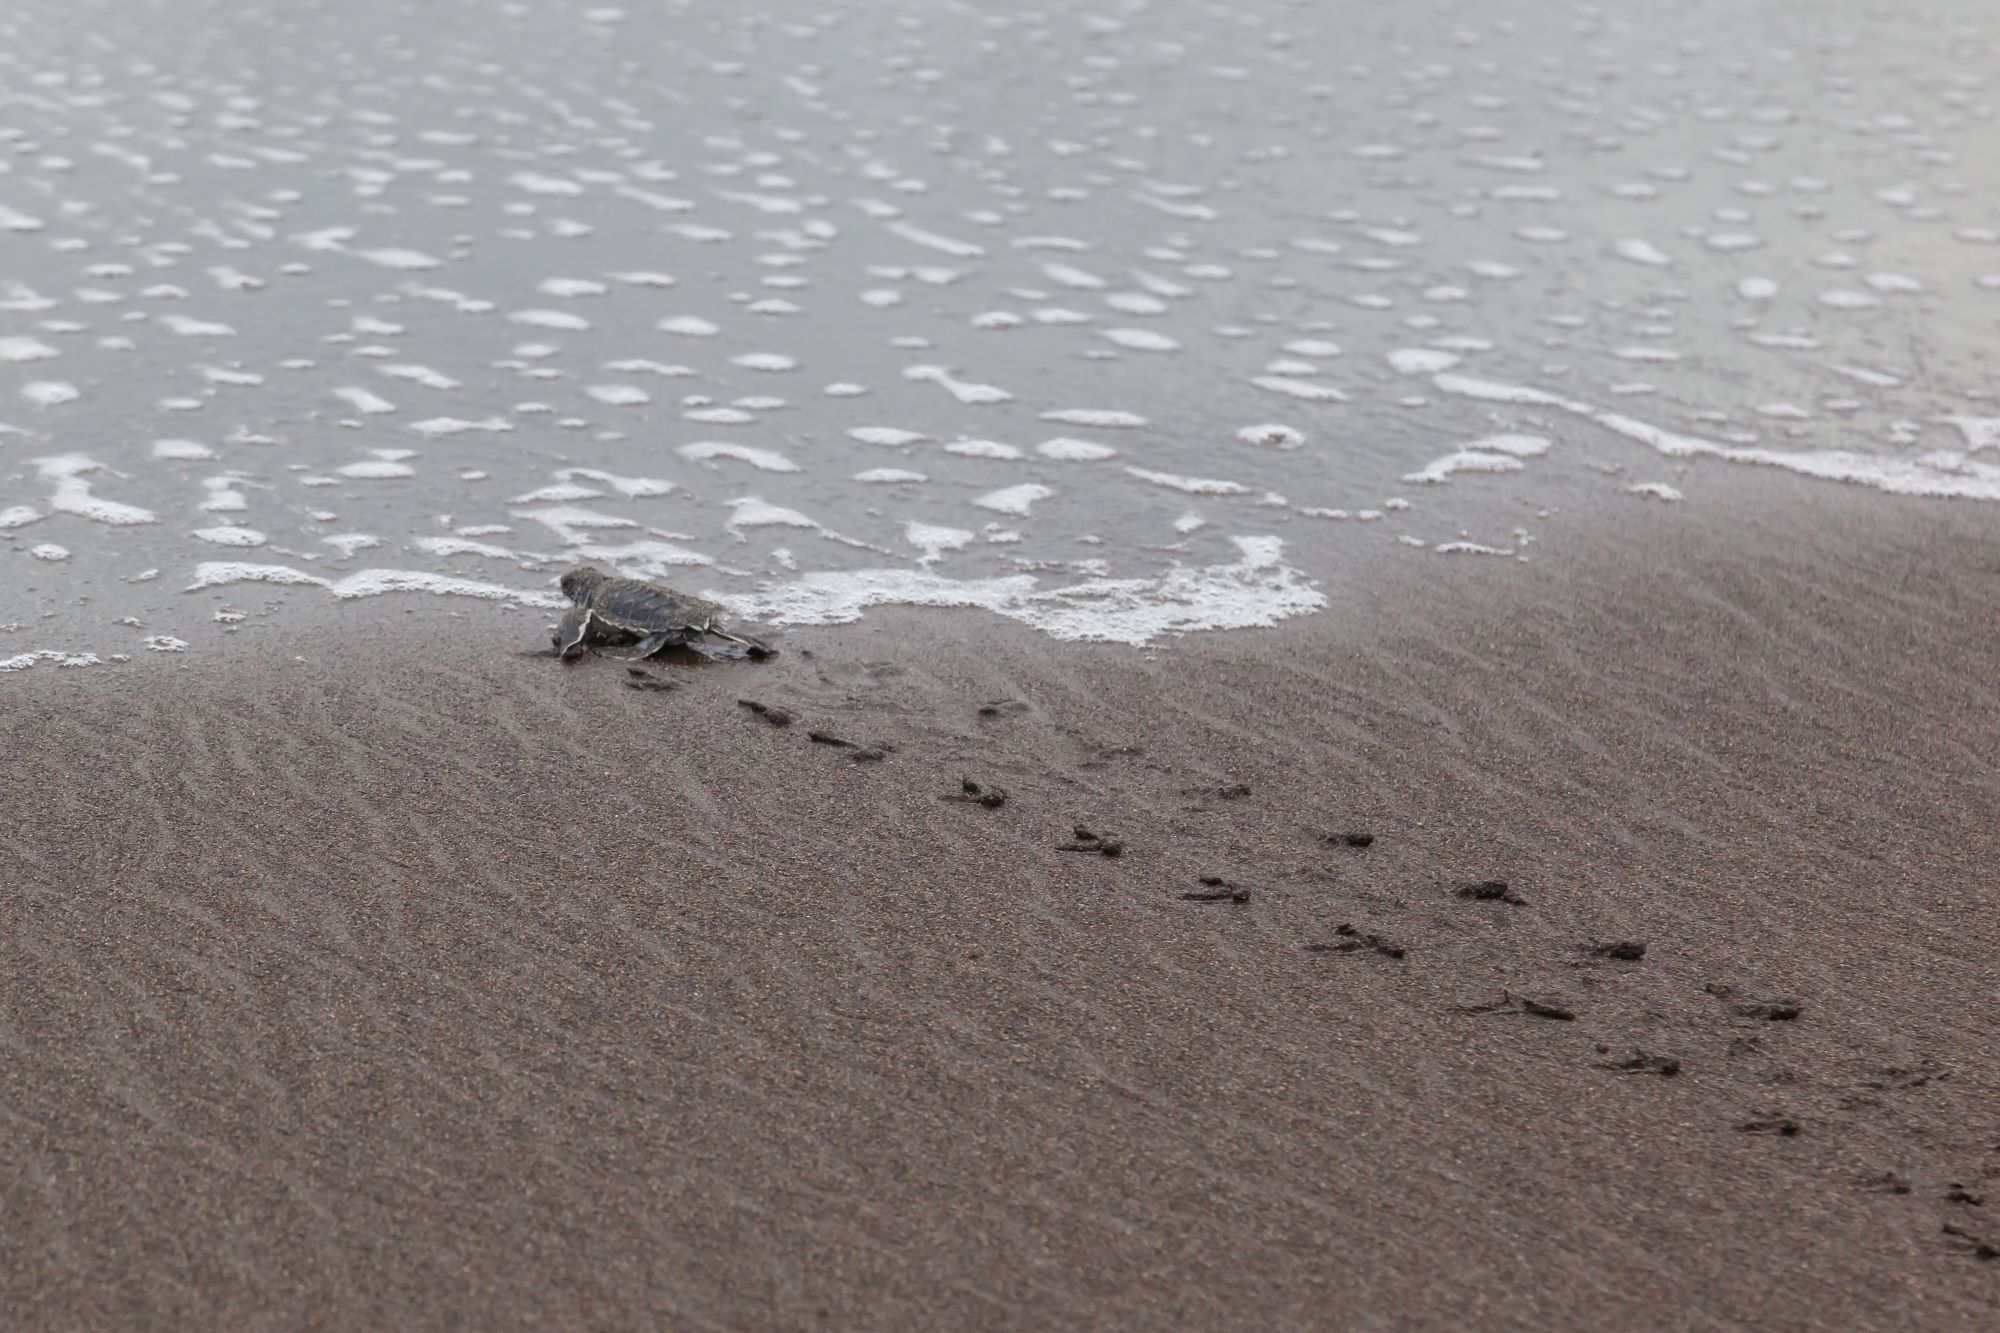 Green_turtle_hatchling_reaches_sea_iStock-1092960846 Web Crop